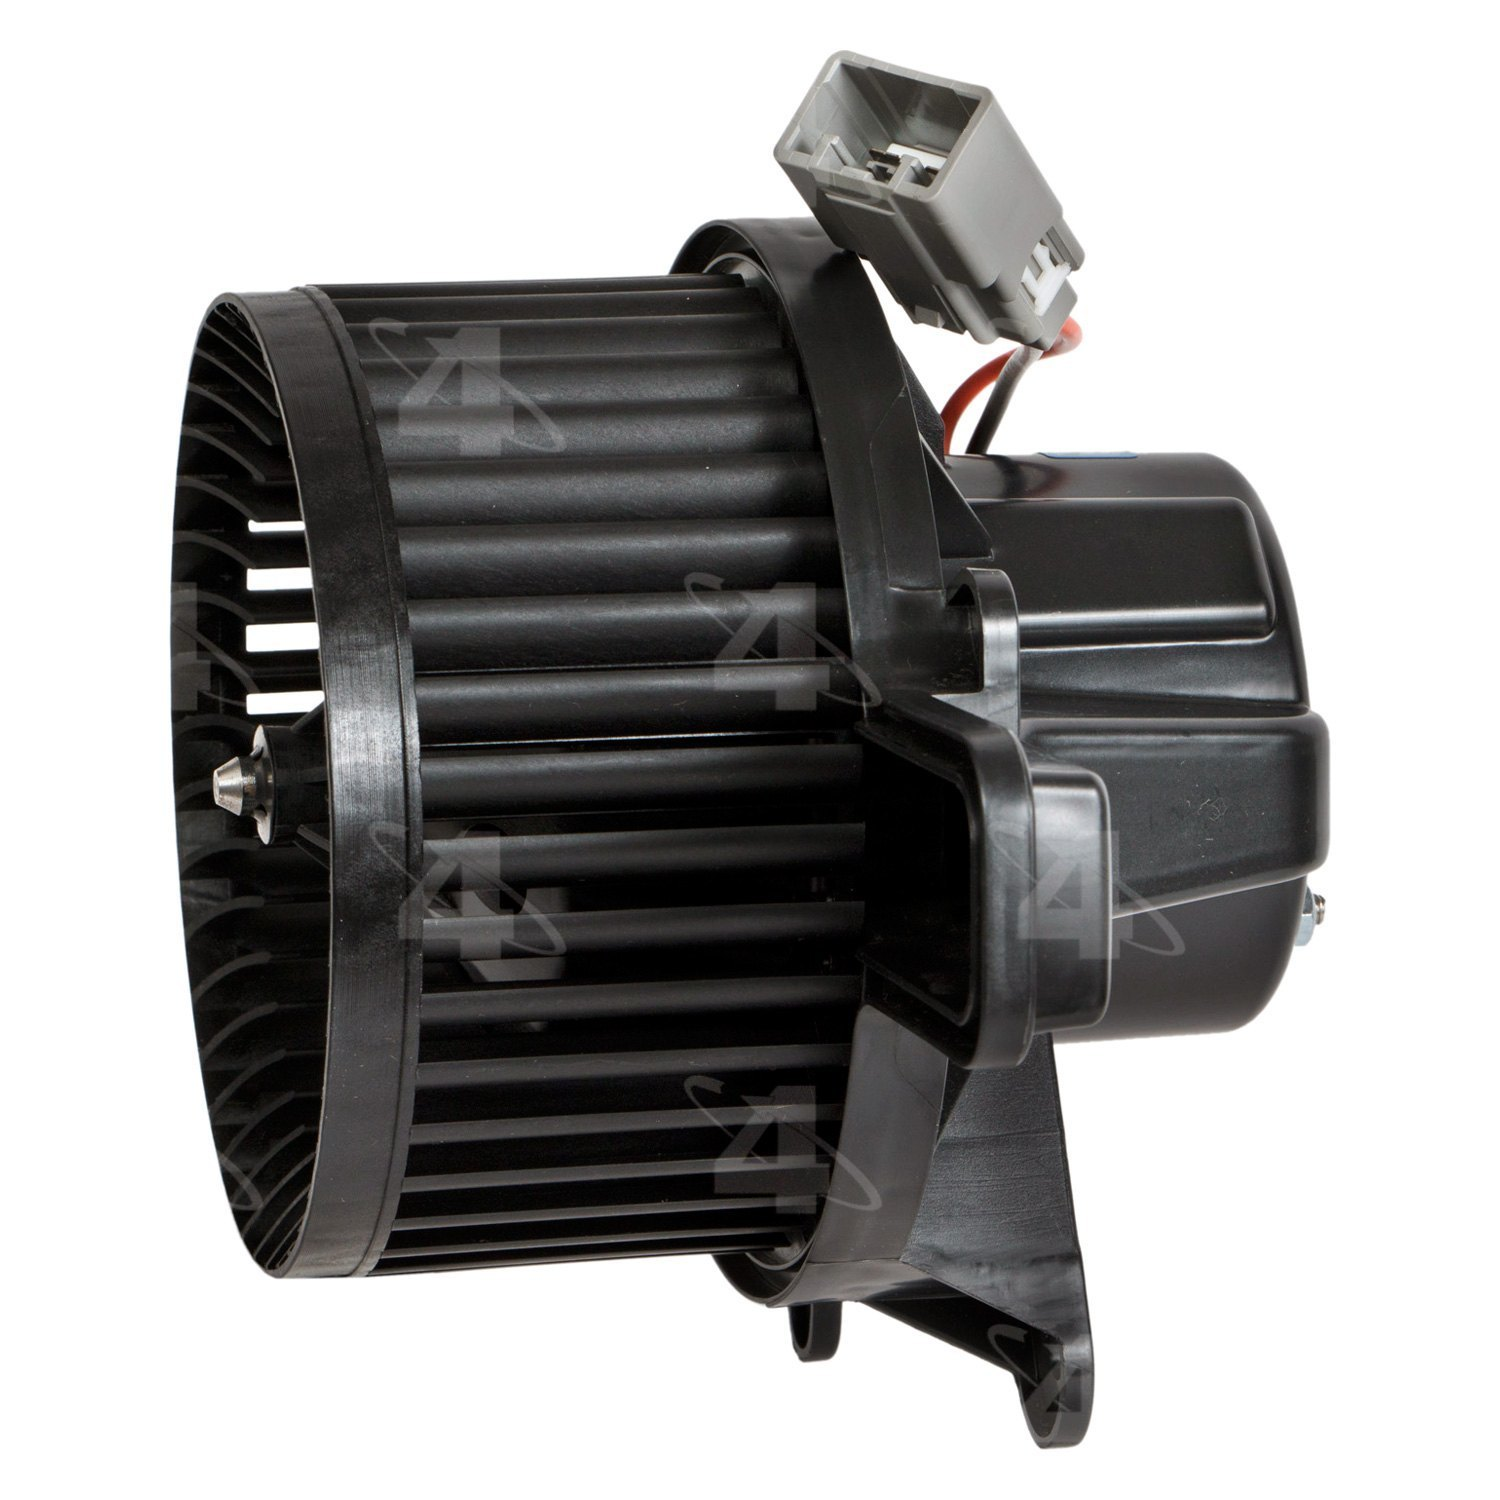 Four seasons chevy tahoe 2015 2017 hvac blower motor for Blow motor for furnace